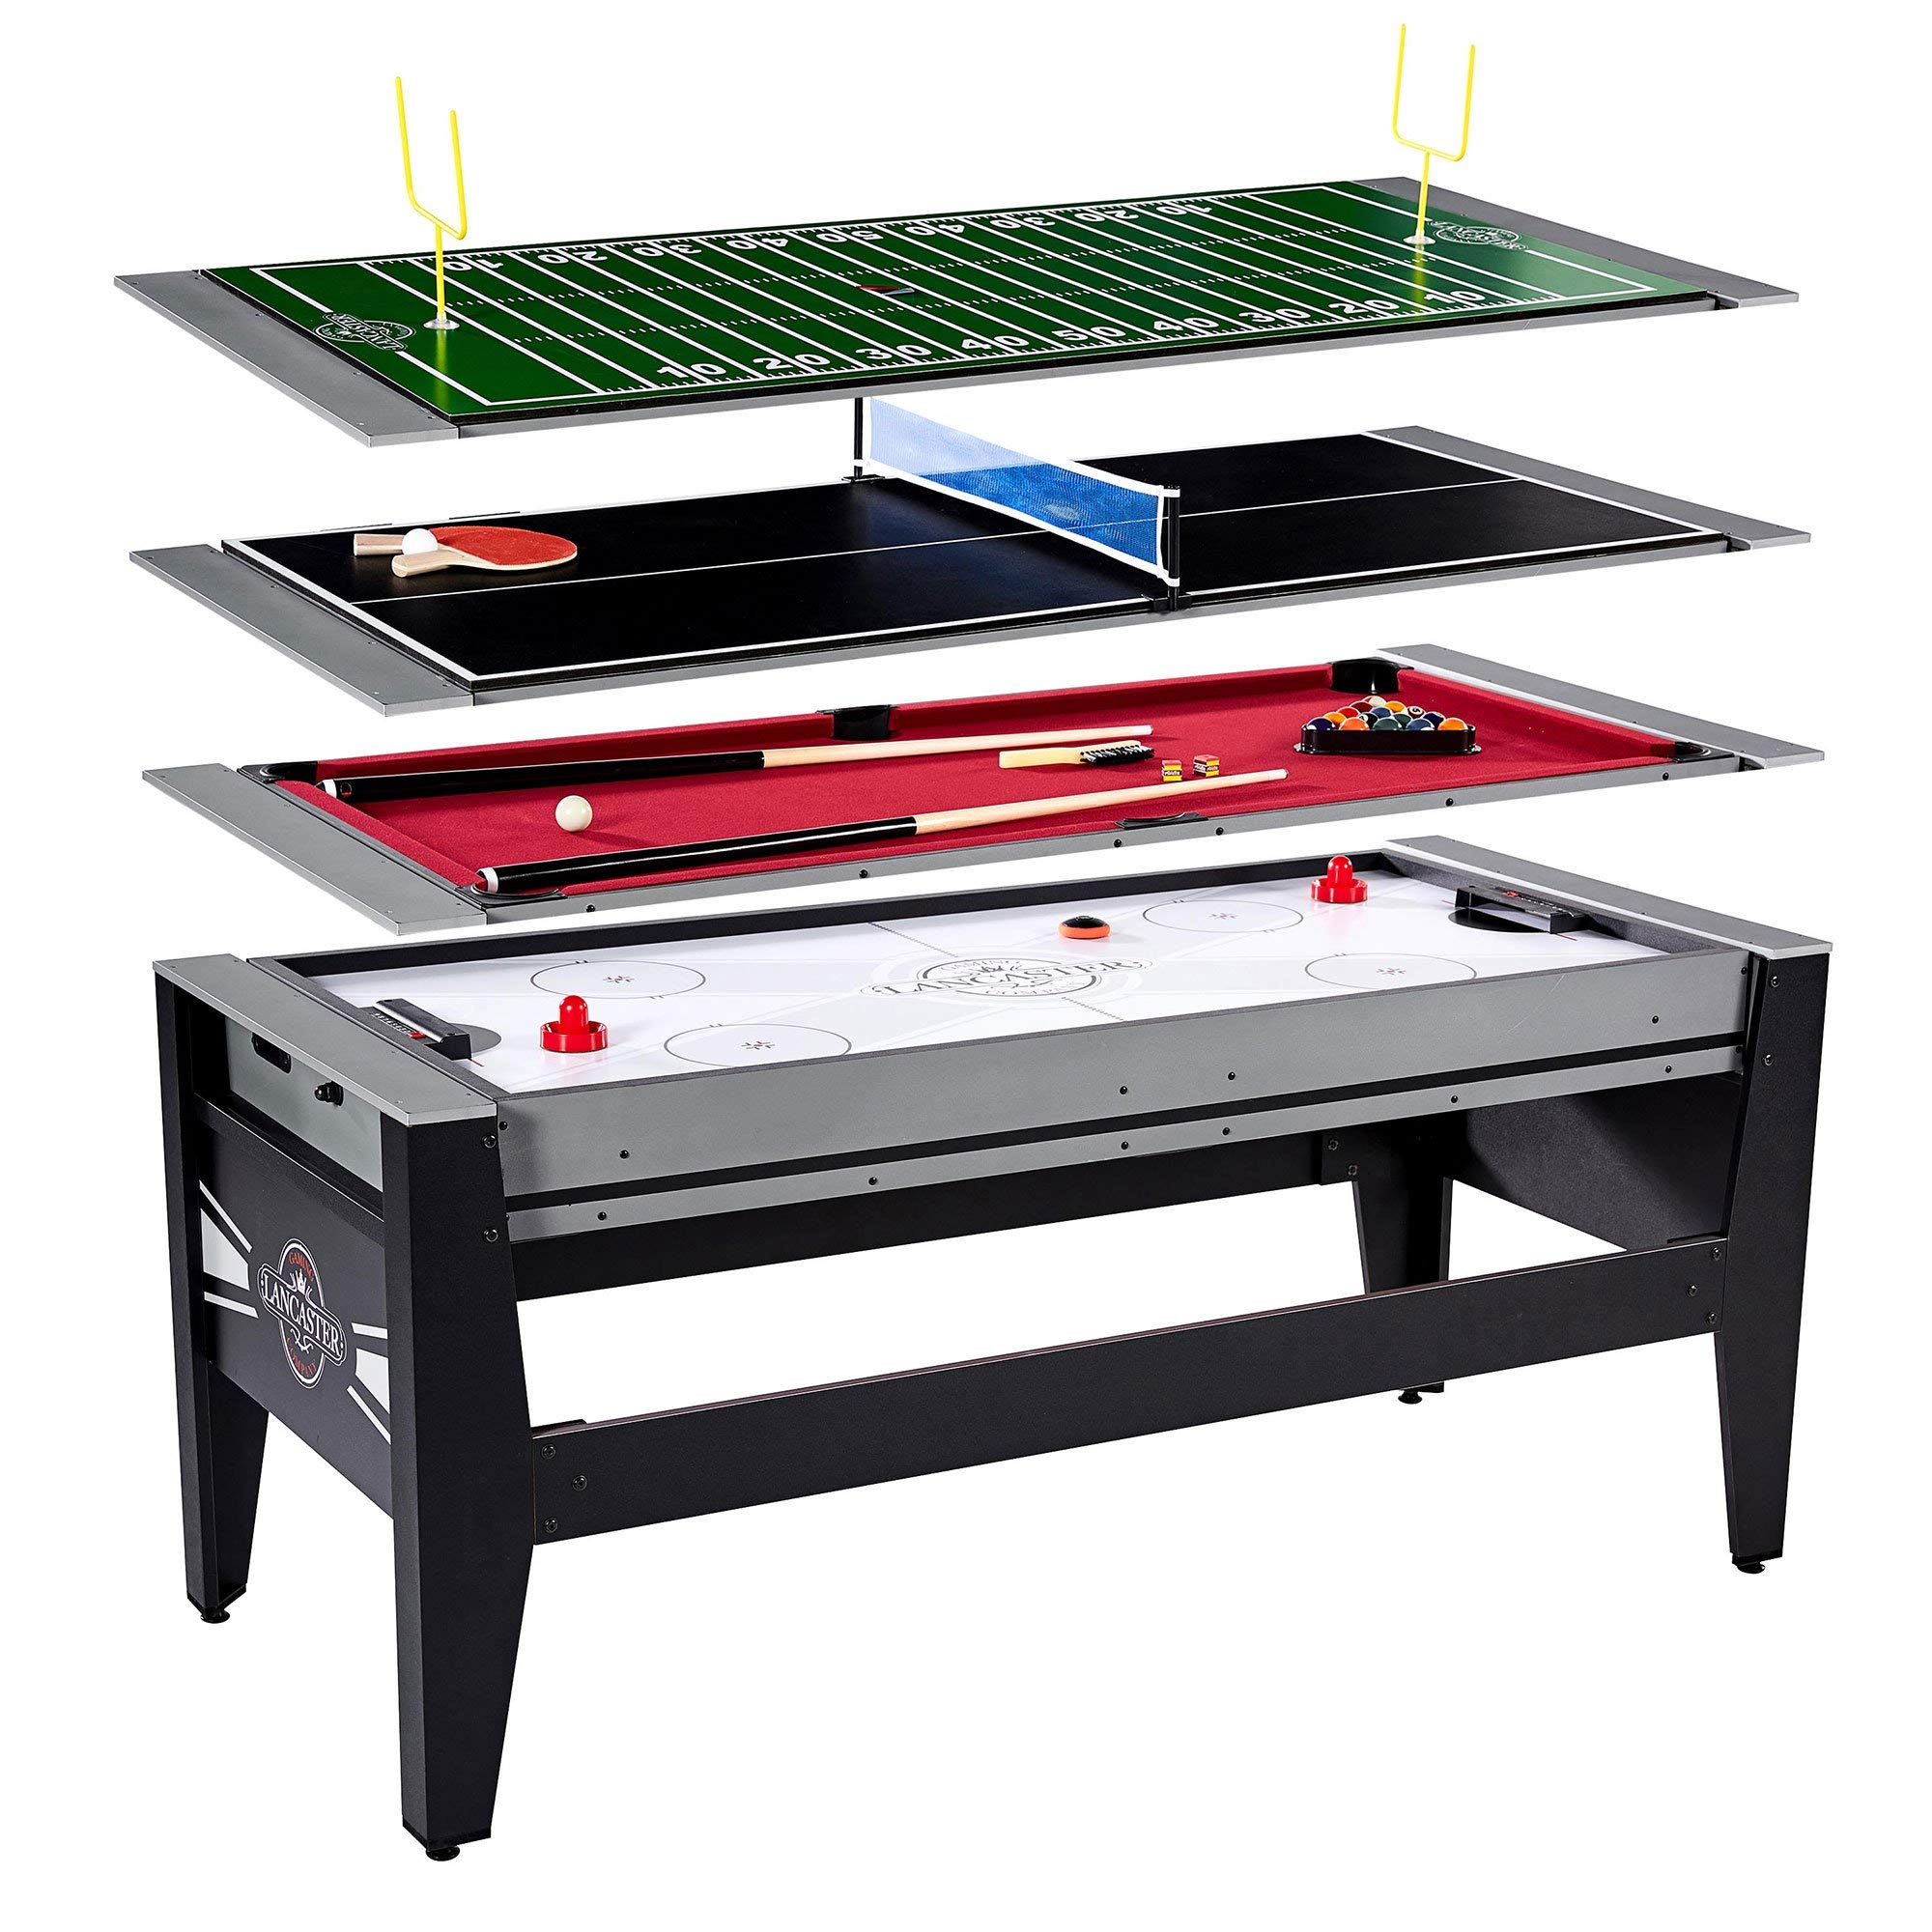 Lancaster Gaming 4 in 1 Table w/ Air Hockey, Billiards, Table Tennis, & Football by Lancaster Gaming Company